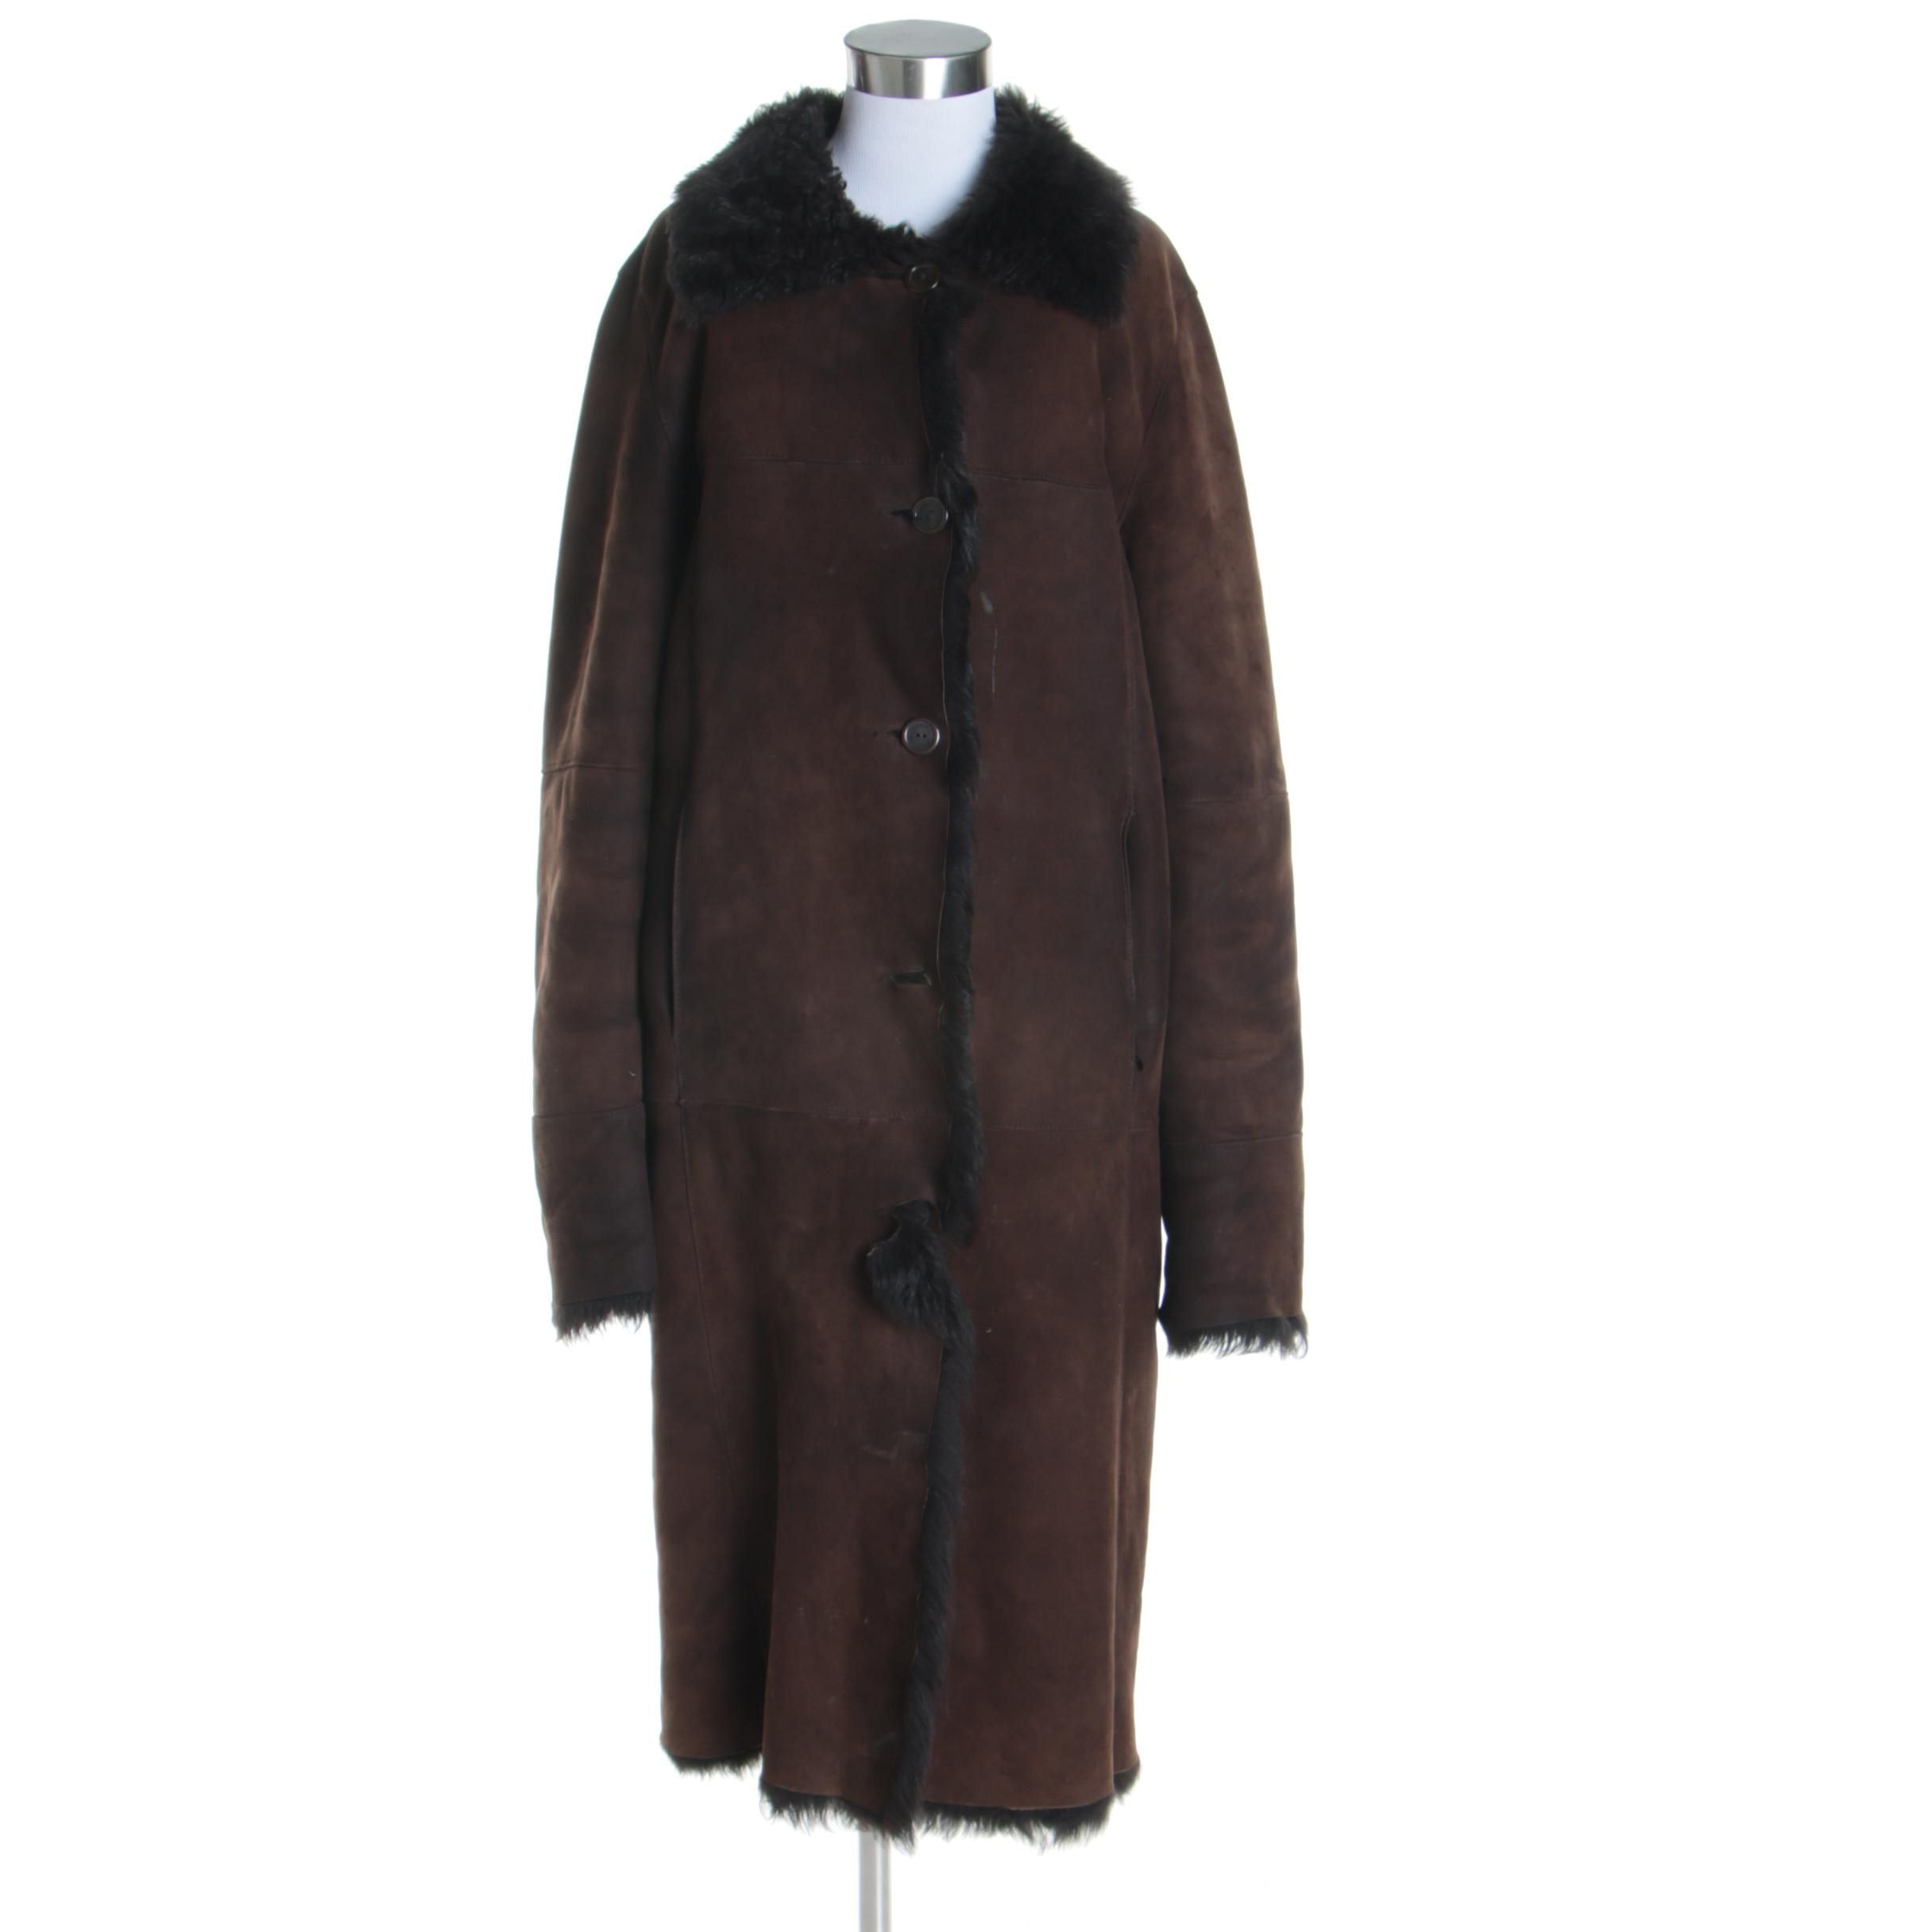 Women's Vintage Dominic Bellissimo Dark Brown Sheepskin Coat